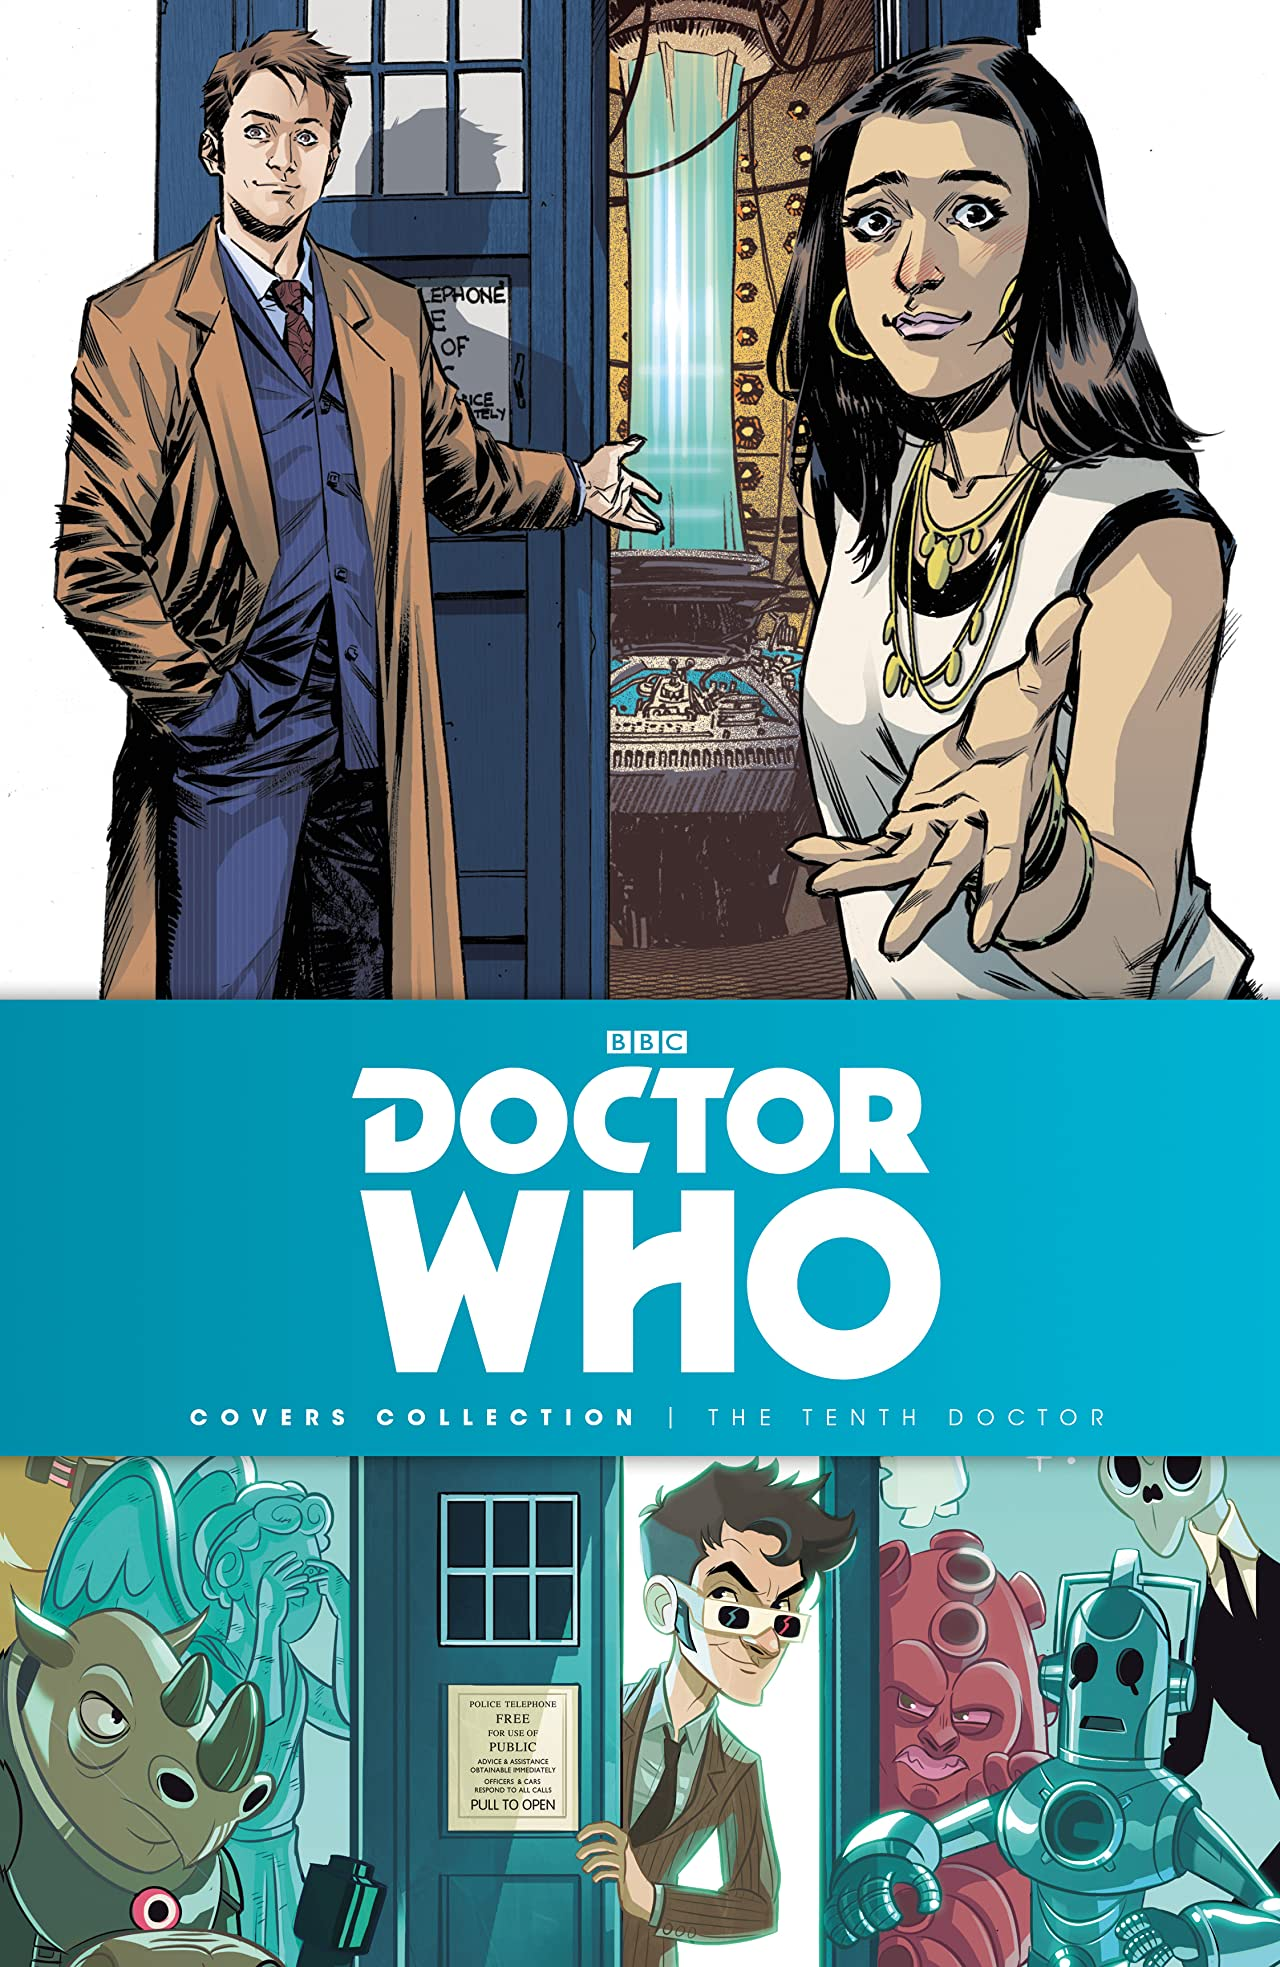 Doctor Who: The Tenth Doctor Covers Collection